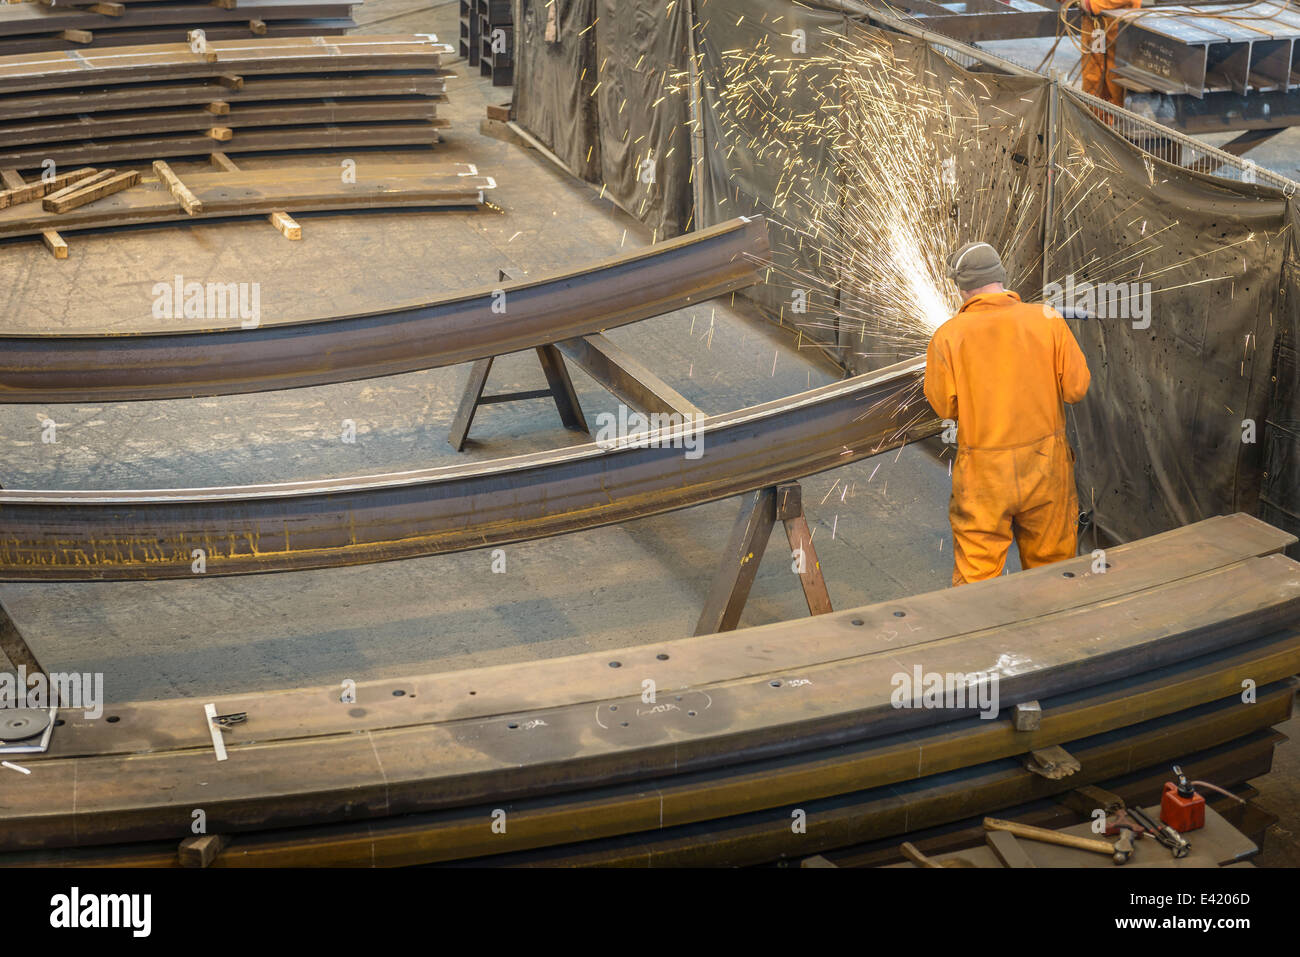 Worker grinding metal construction in marine fabrication factory, high angle view - Stock Image